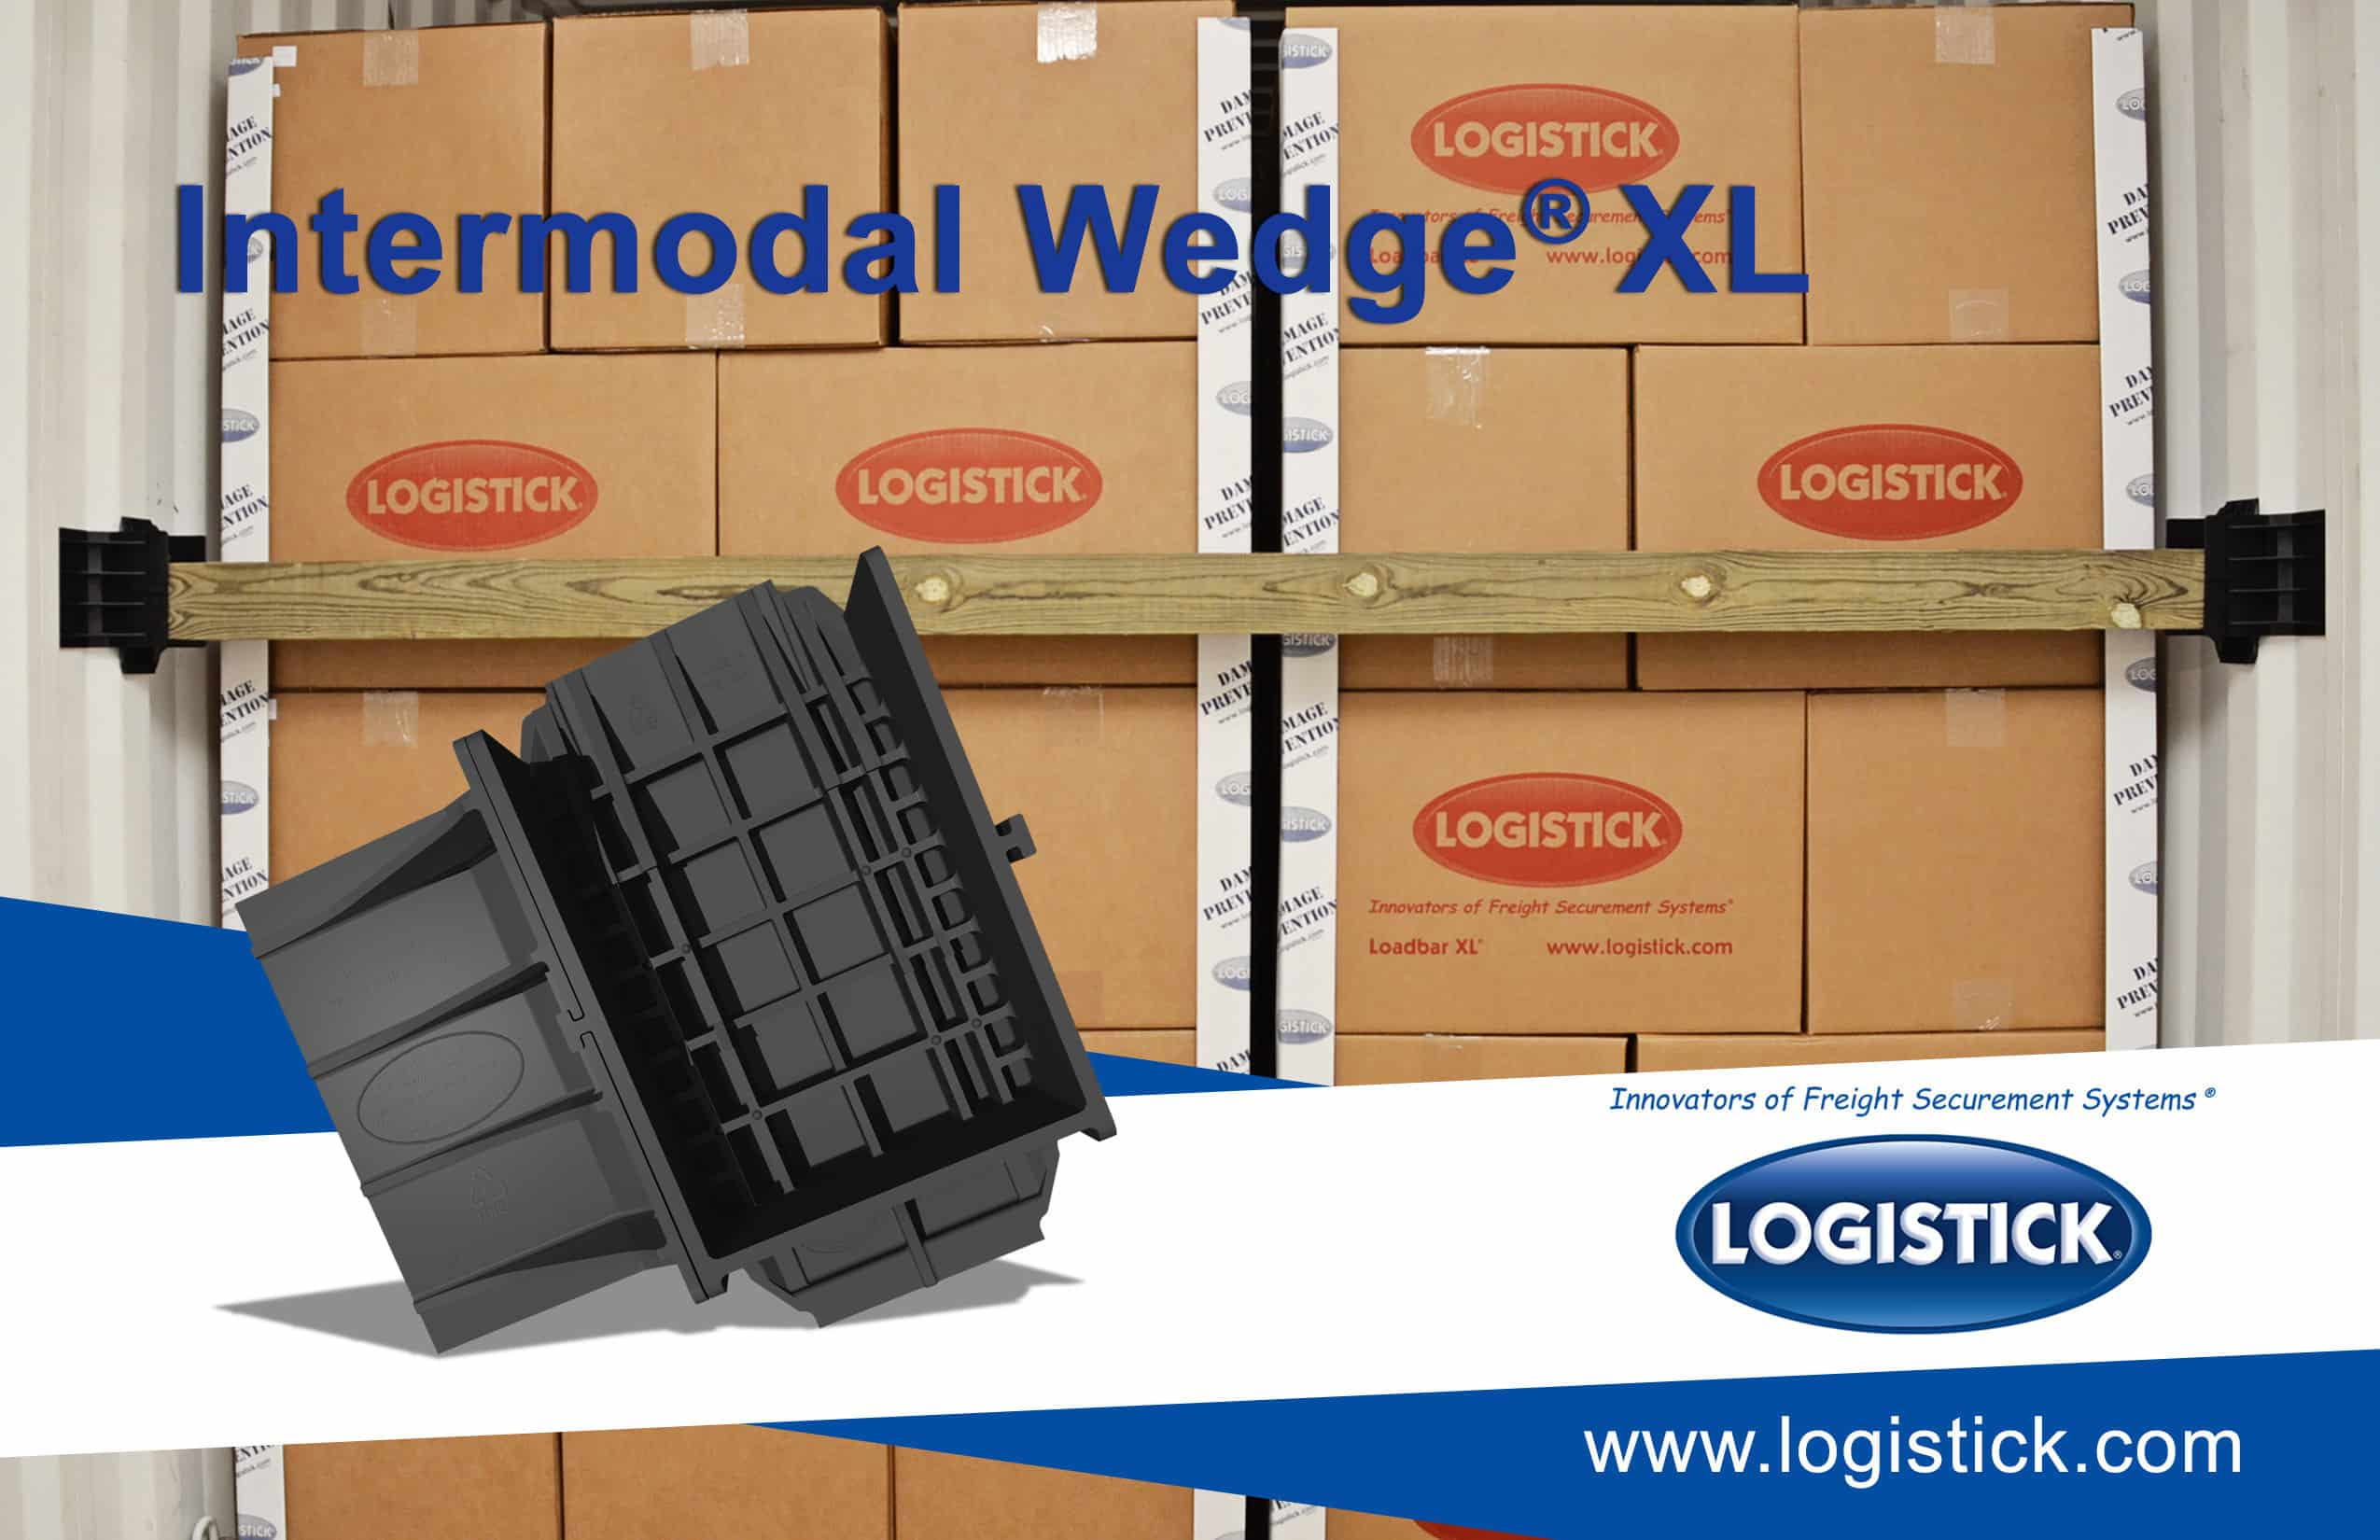 Intermodal Wedge XL